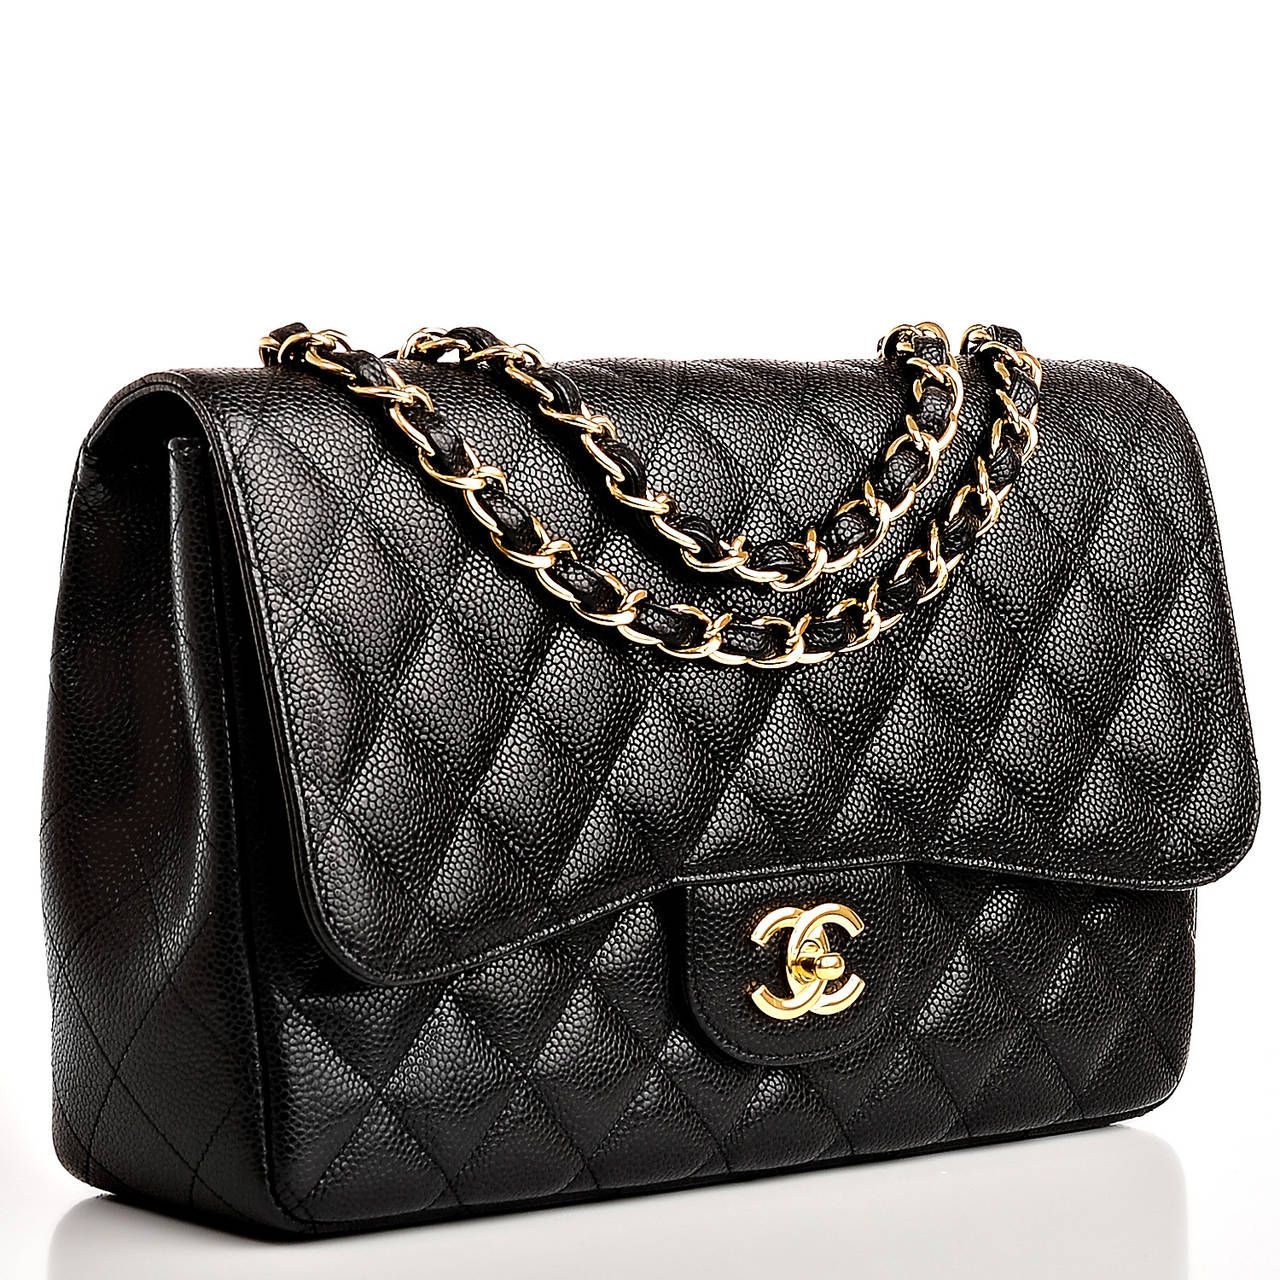 9adc85e8343d Chanel Handtasche Flap Bag | Chanel Blue Quilted Caviar Jumbo ...